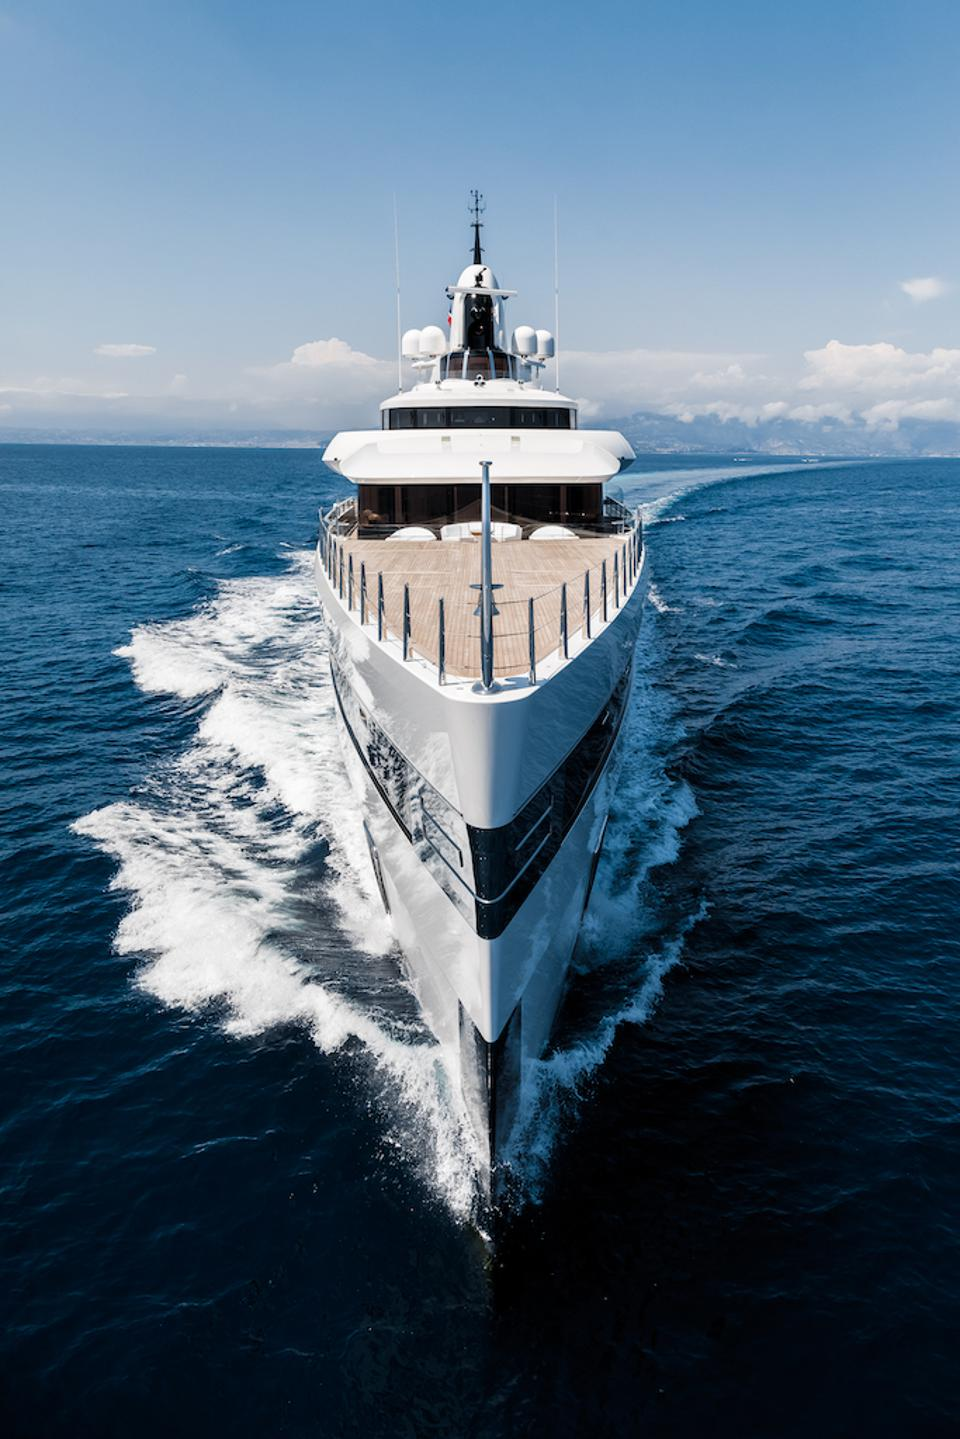 Lady S wins her category in the Boat International's annual superyacht awards